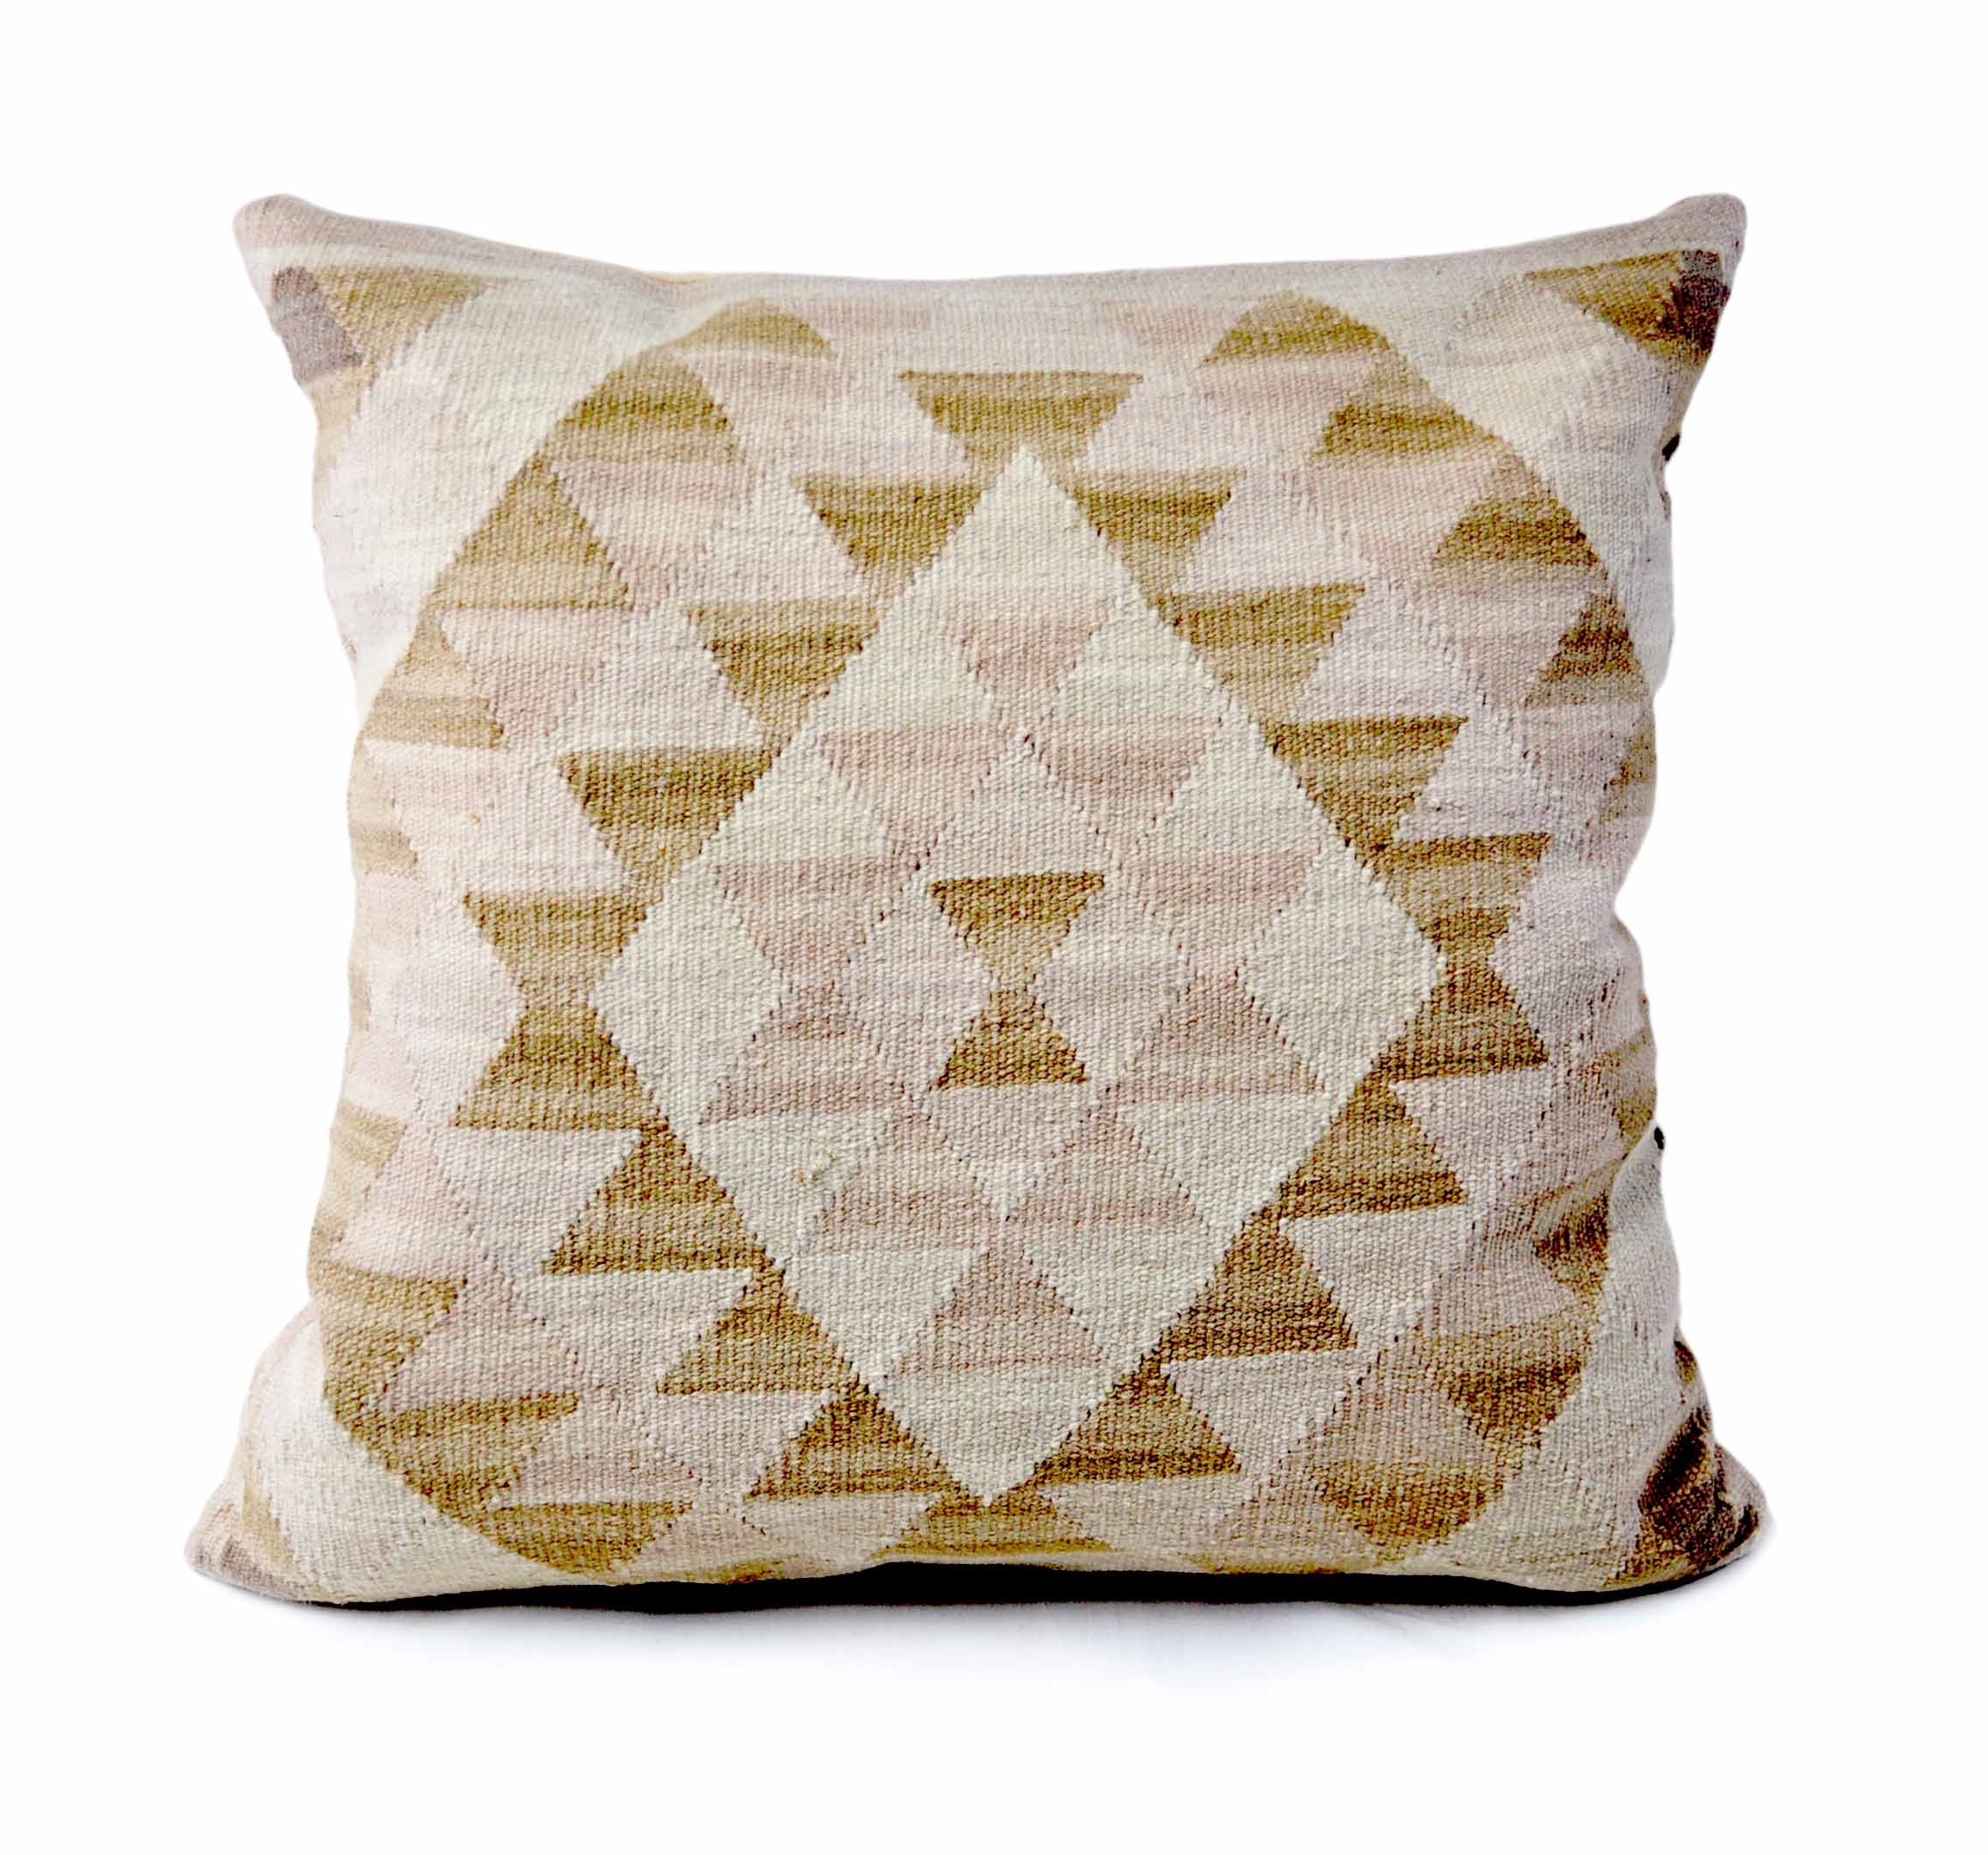 24×24 Hand-woven Wool Kilim Pillow Cover 12981028